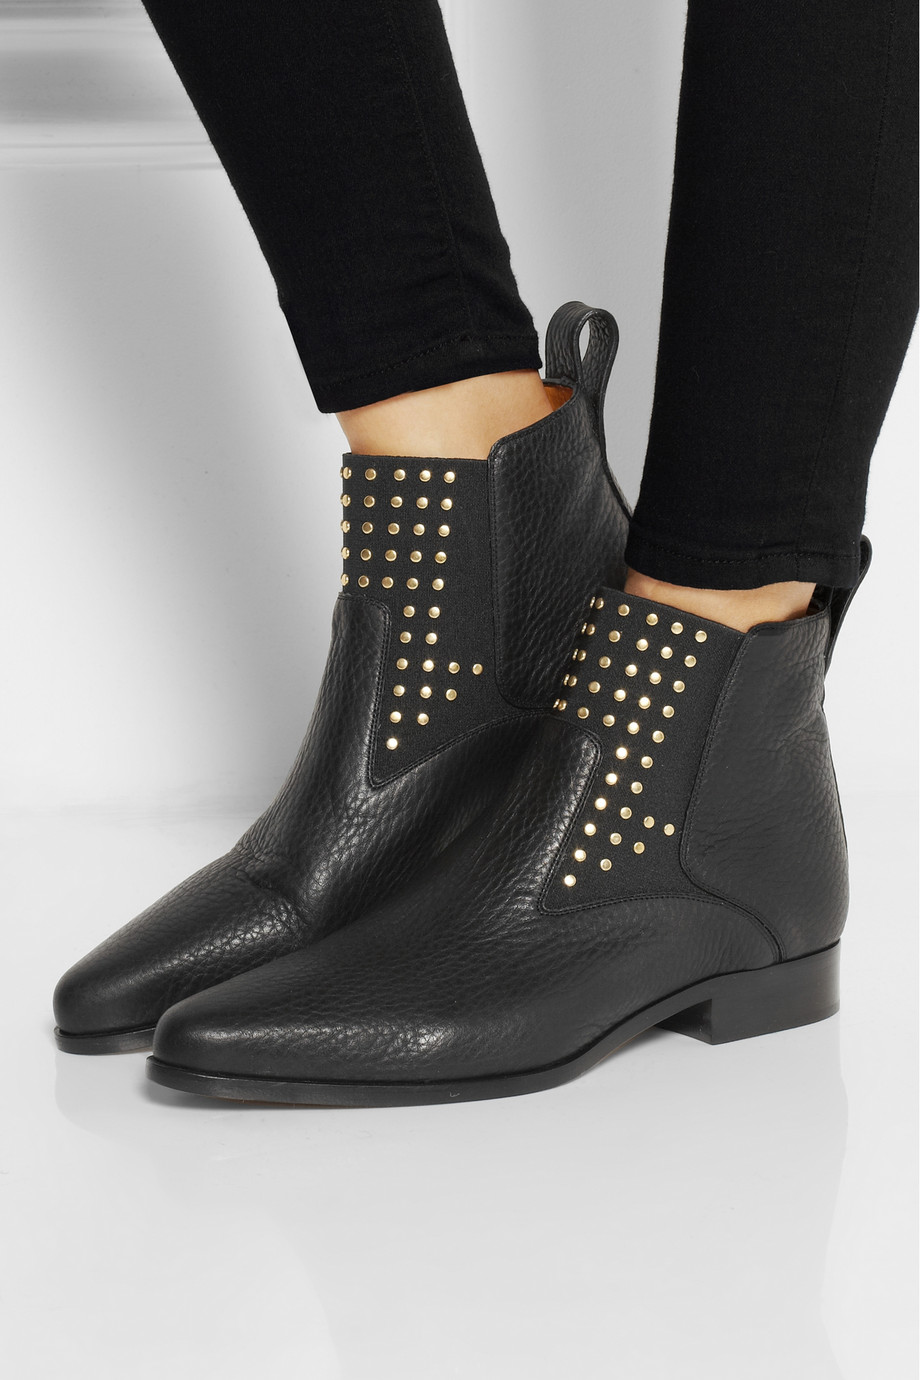 Studded Ankle Boots 5VrMocQS